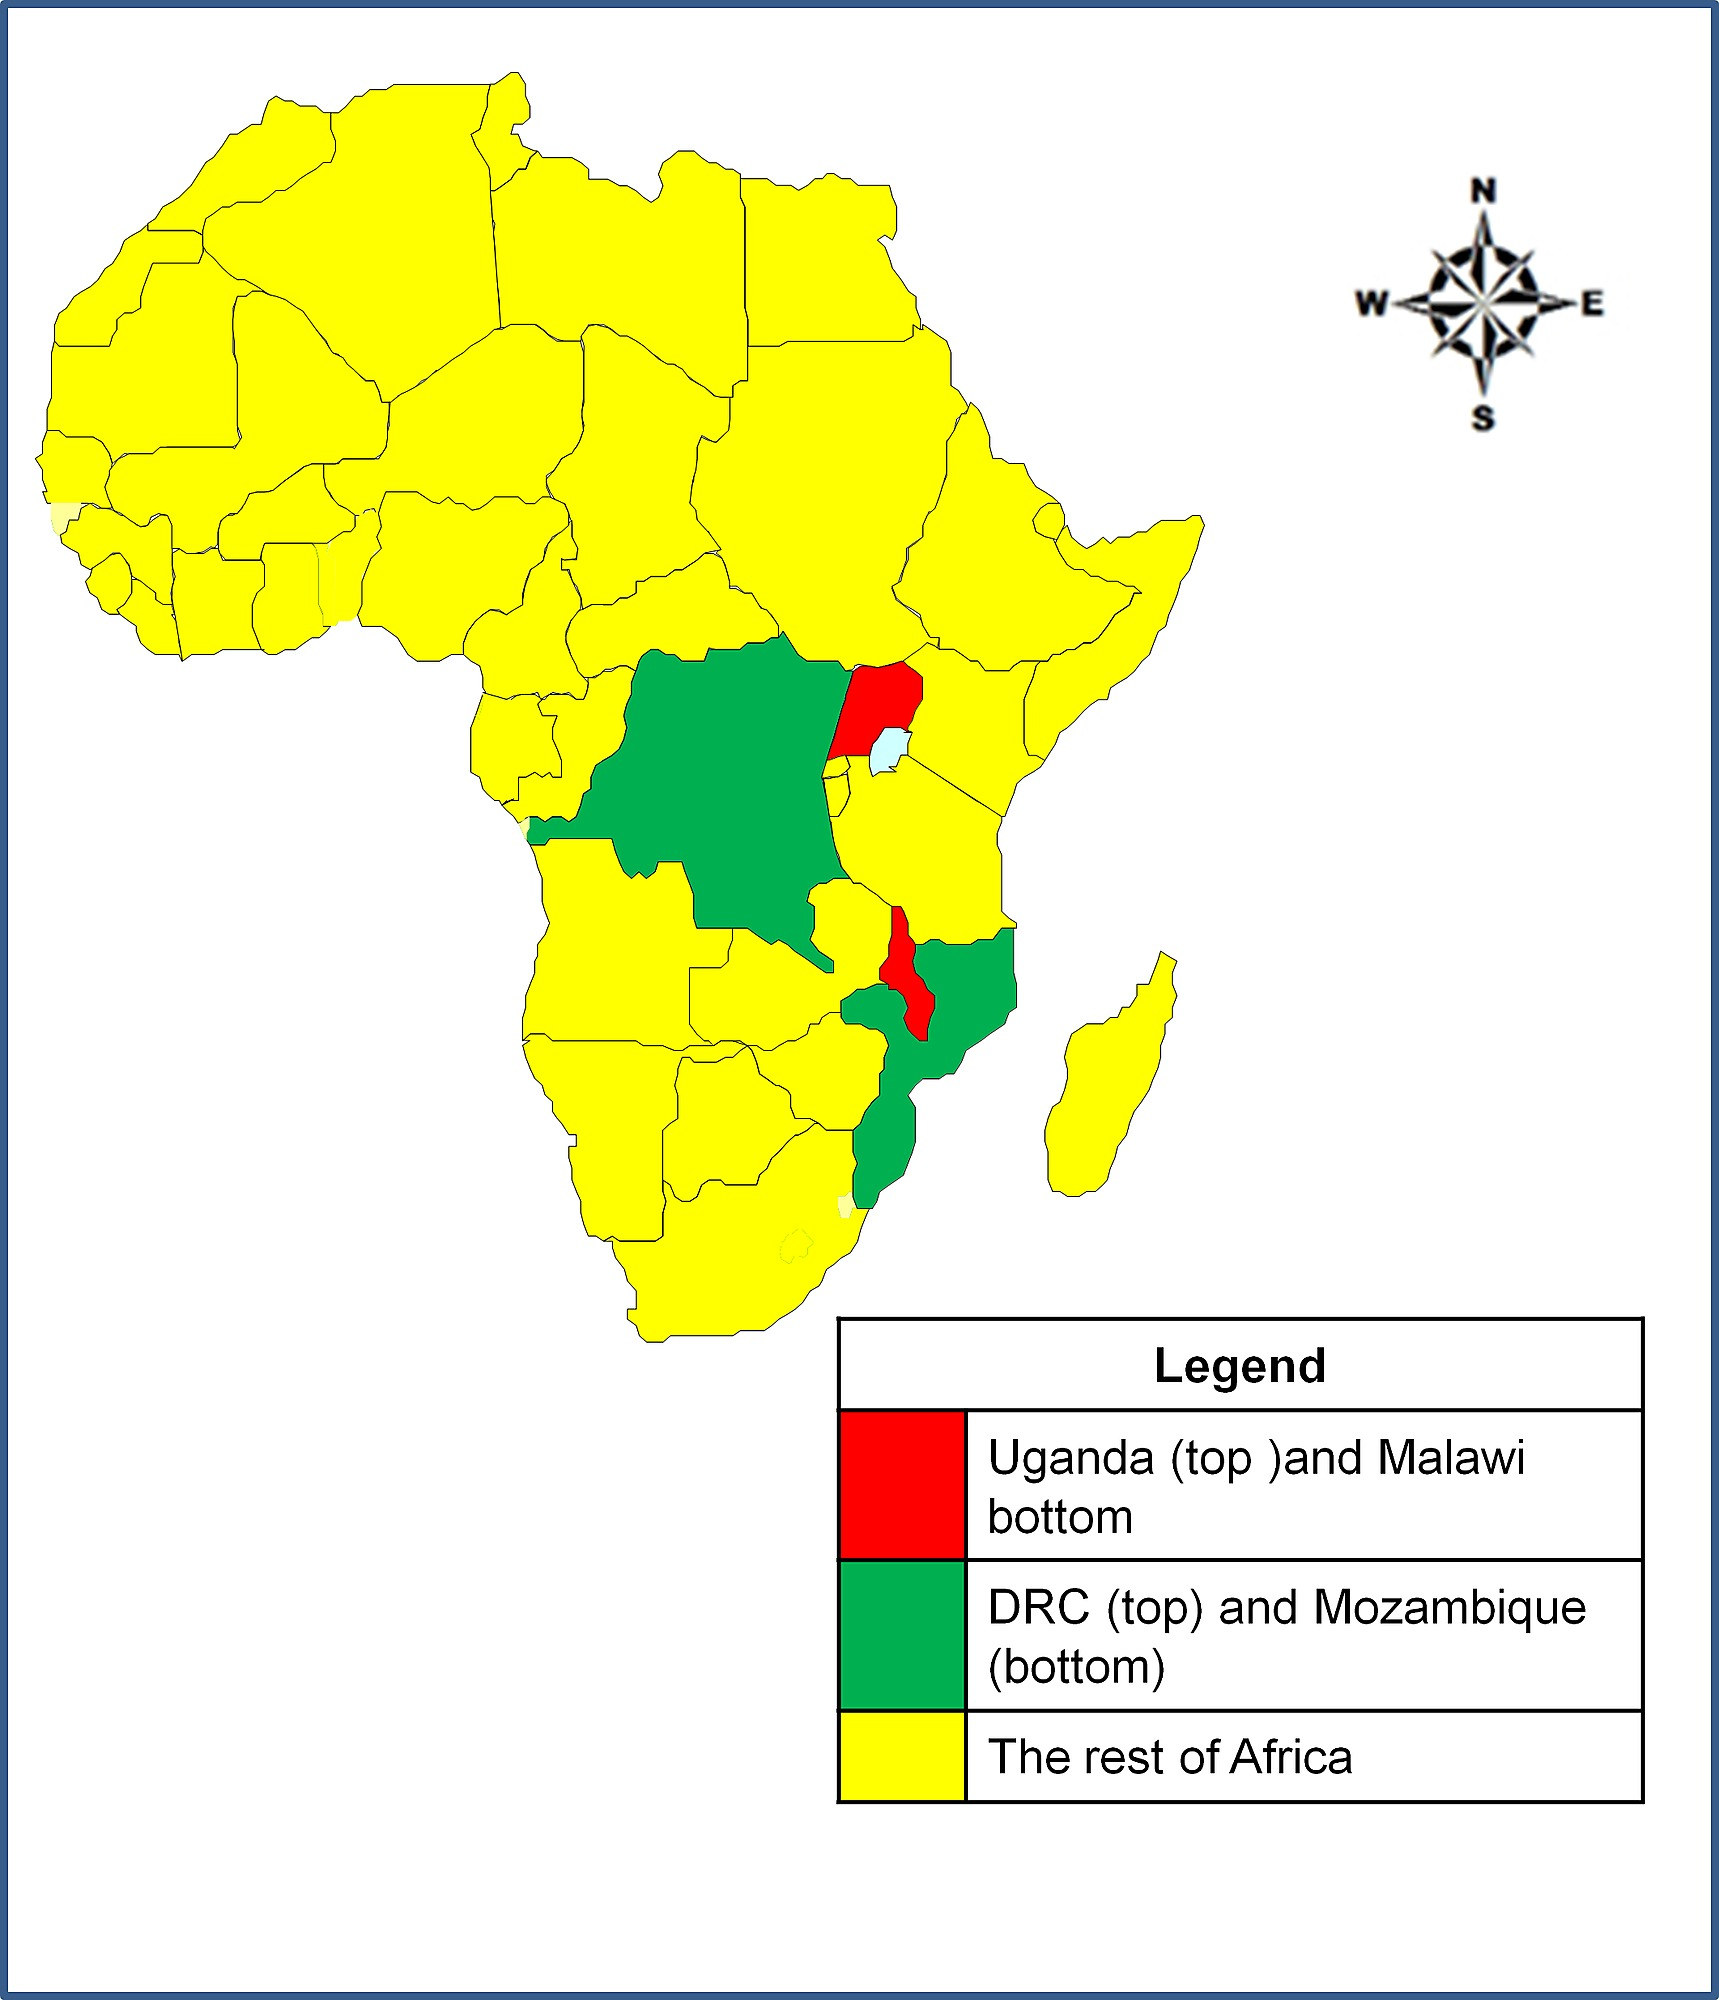 uganda location in africa map The Map Of Africa Showing The Location Of Uganda And Malawi And uganda location in africa map